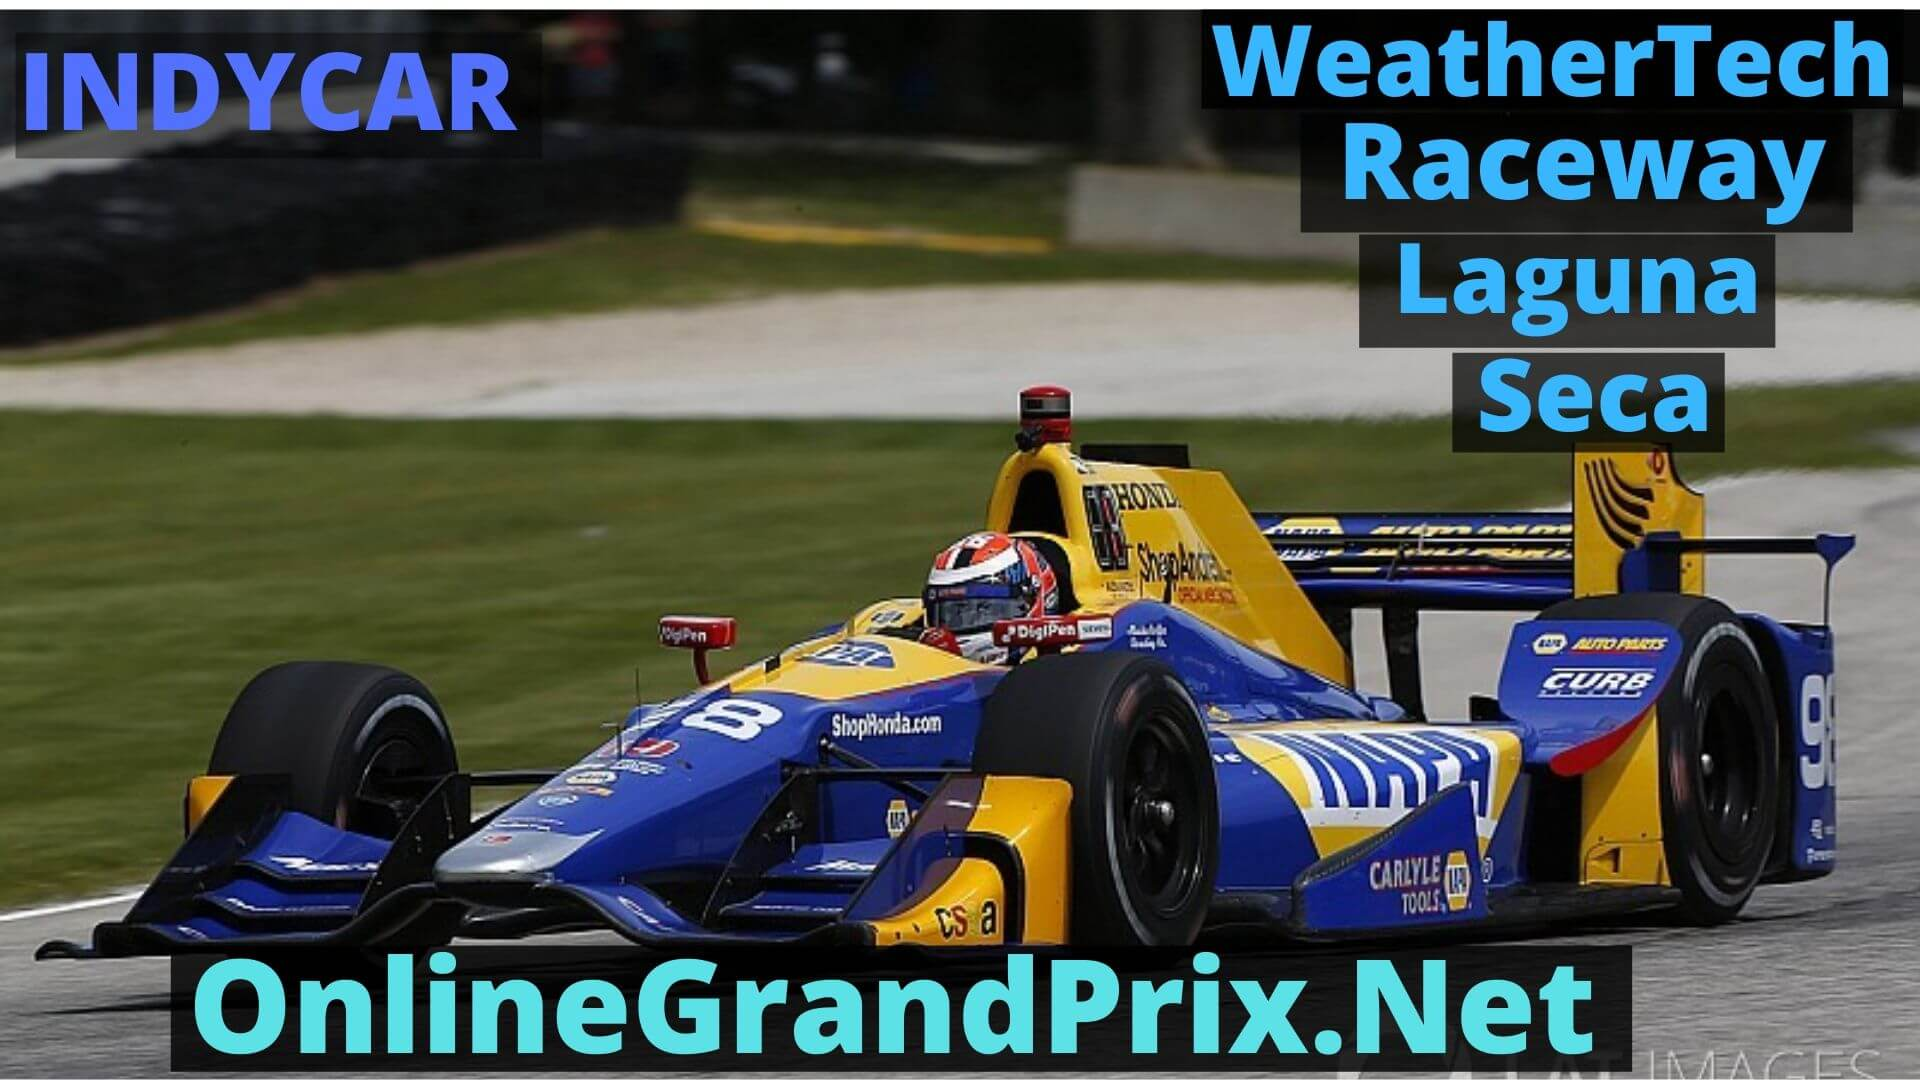 Firestone GP of Monterey Live Stream 2020 | Indycar